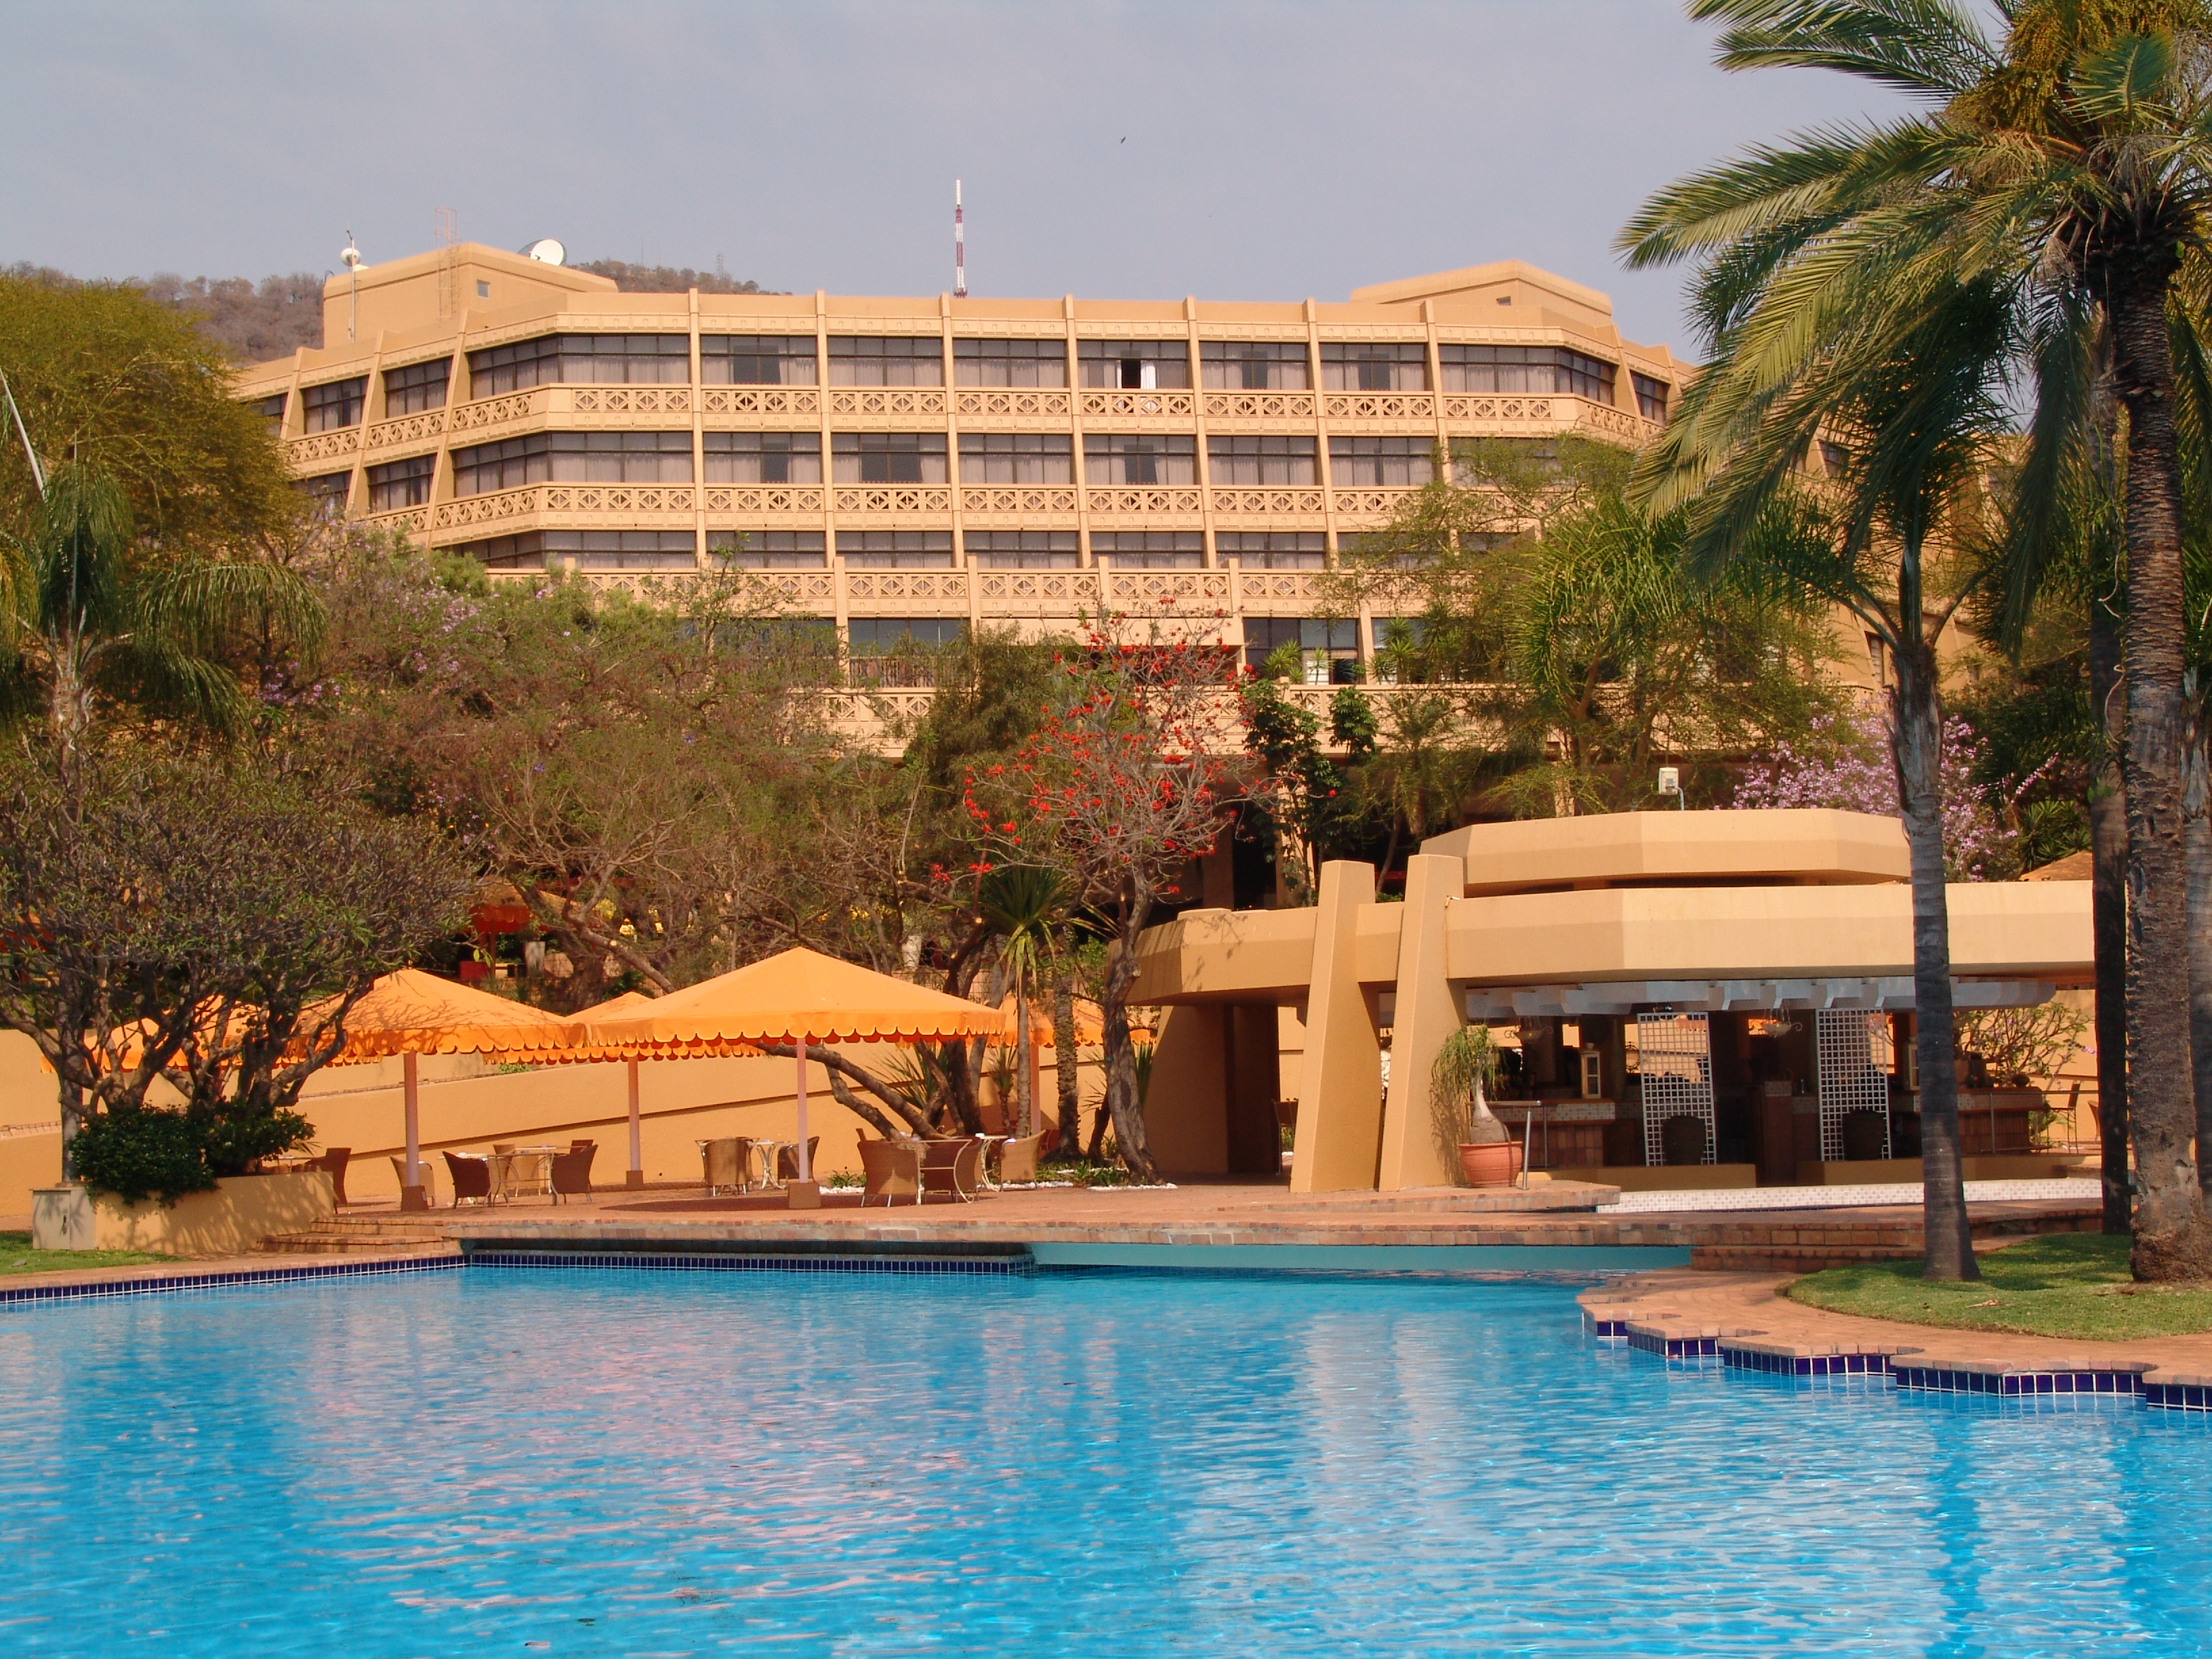 Sun City Hotel With The Pool In Foreground